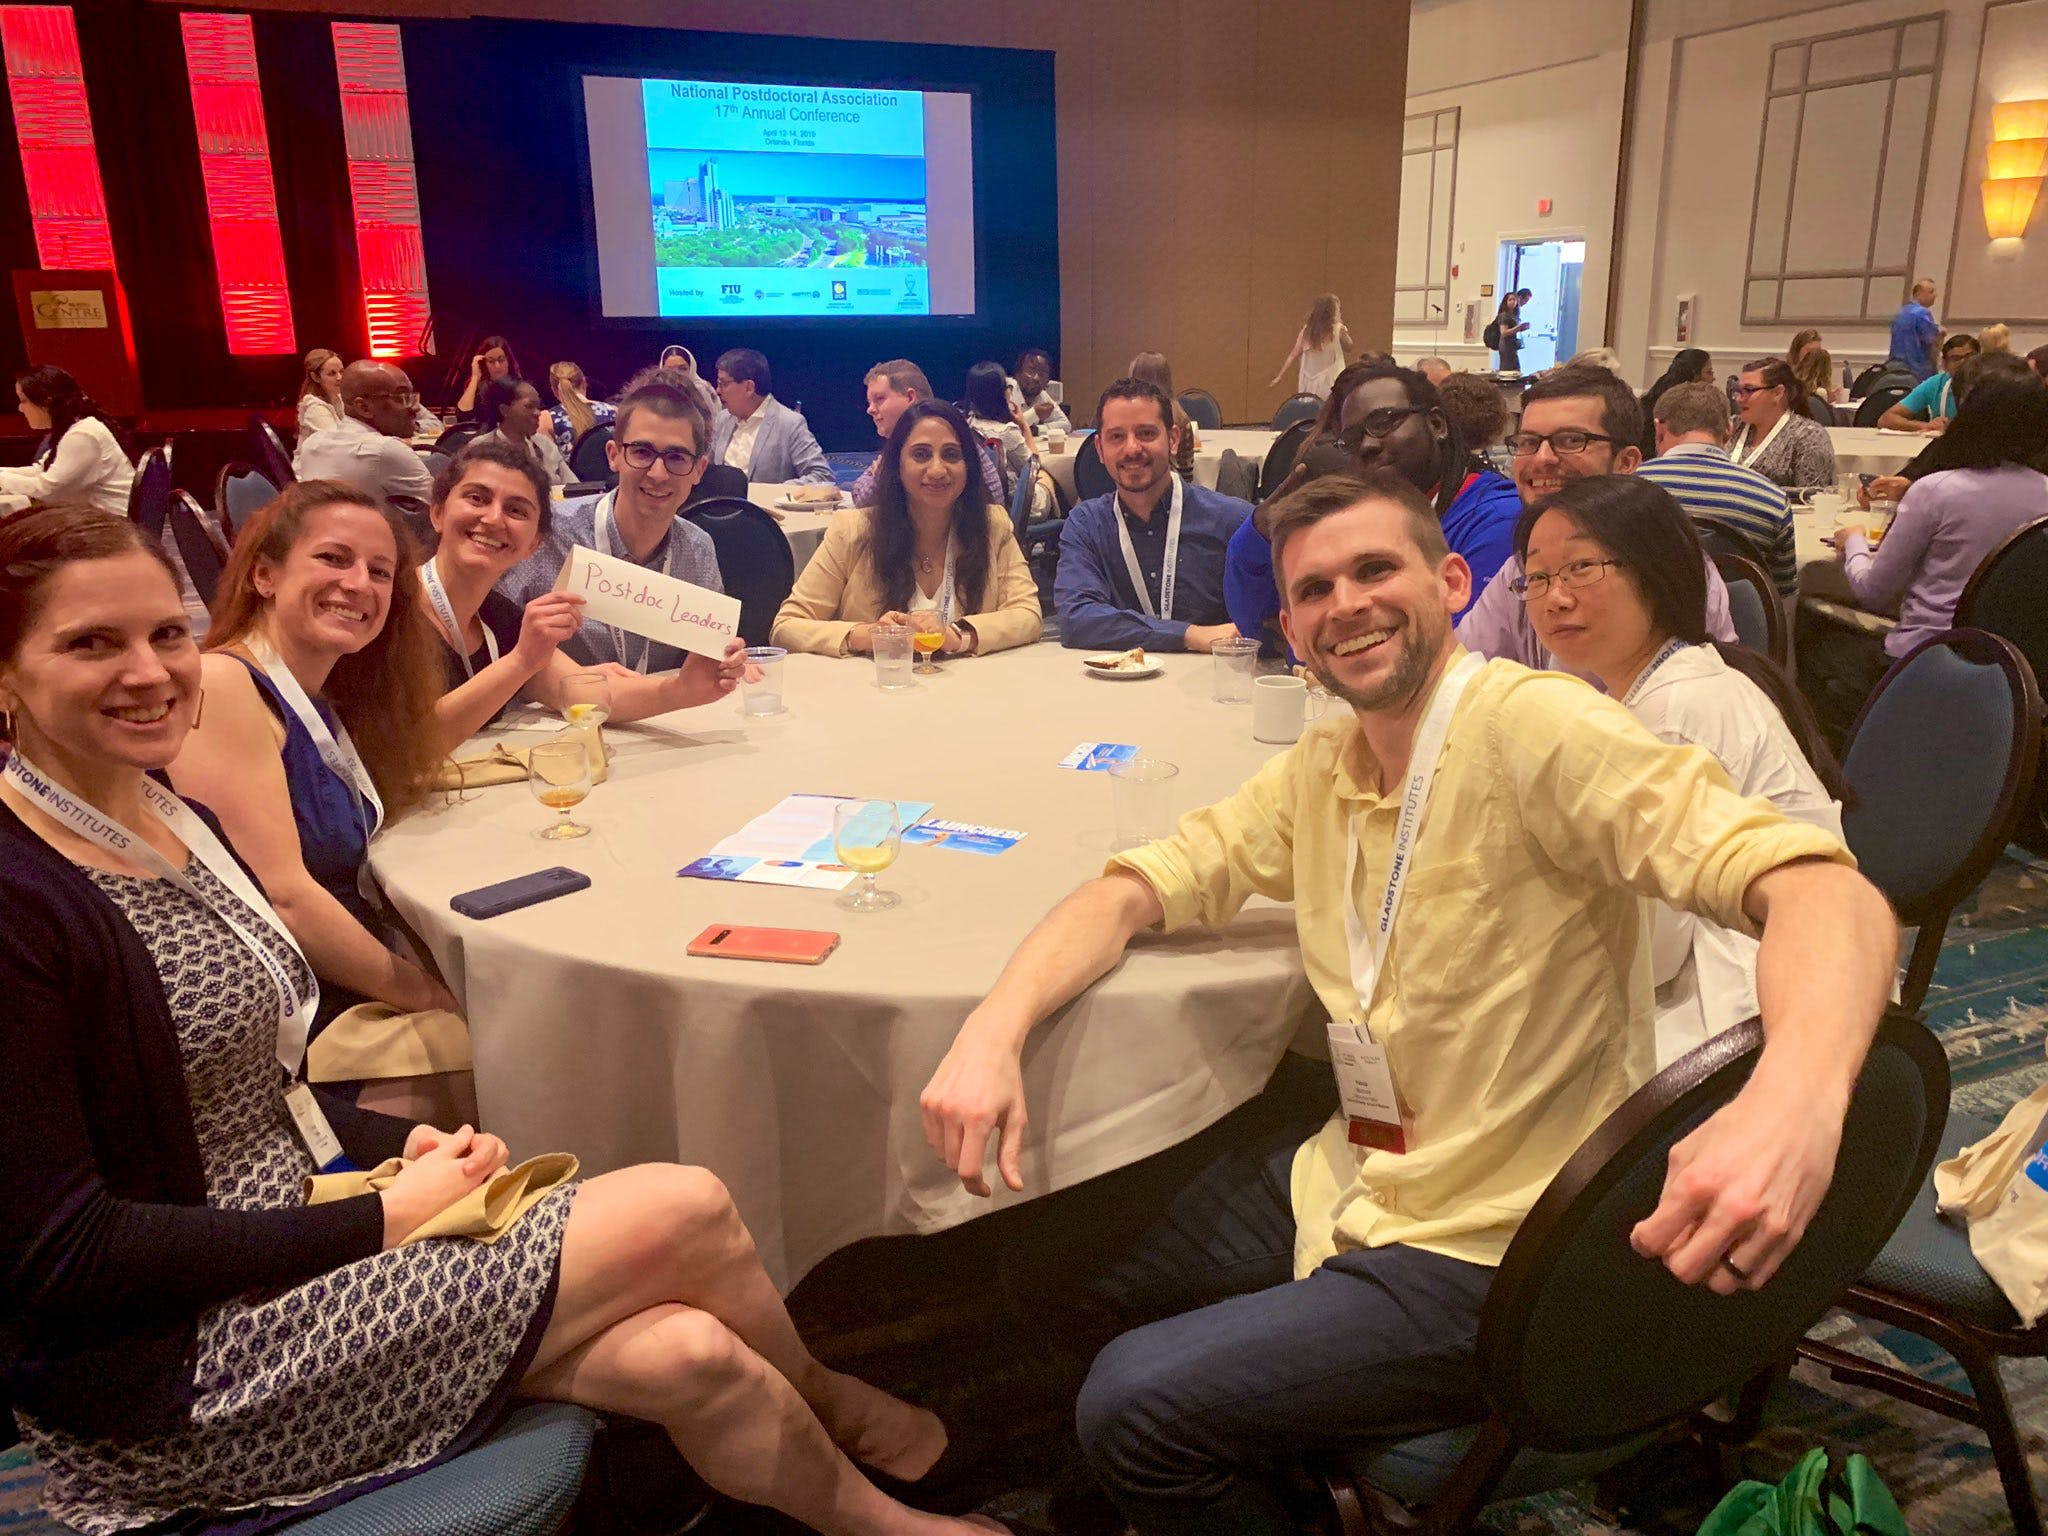 """A group of people posing for a photo seated at a circular table. One is holding a paper sign that reads """"Postdoc Leaders."""""""